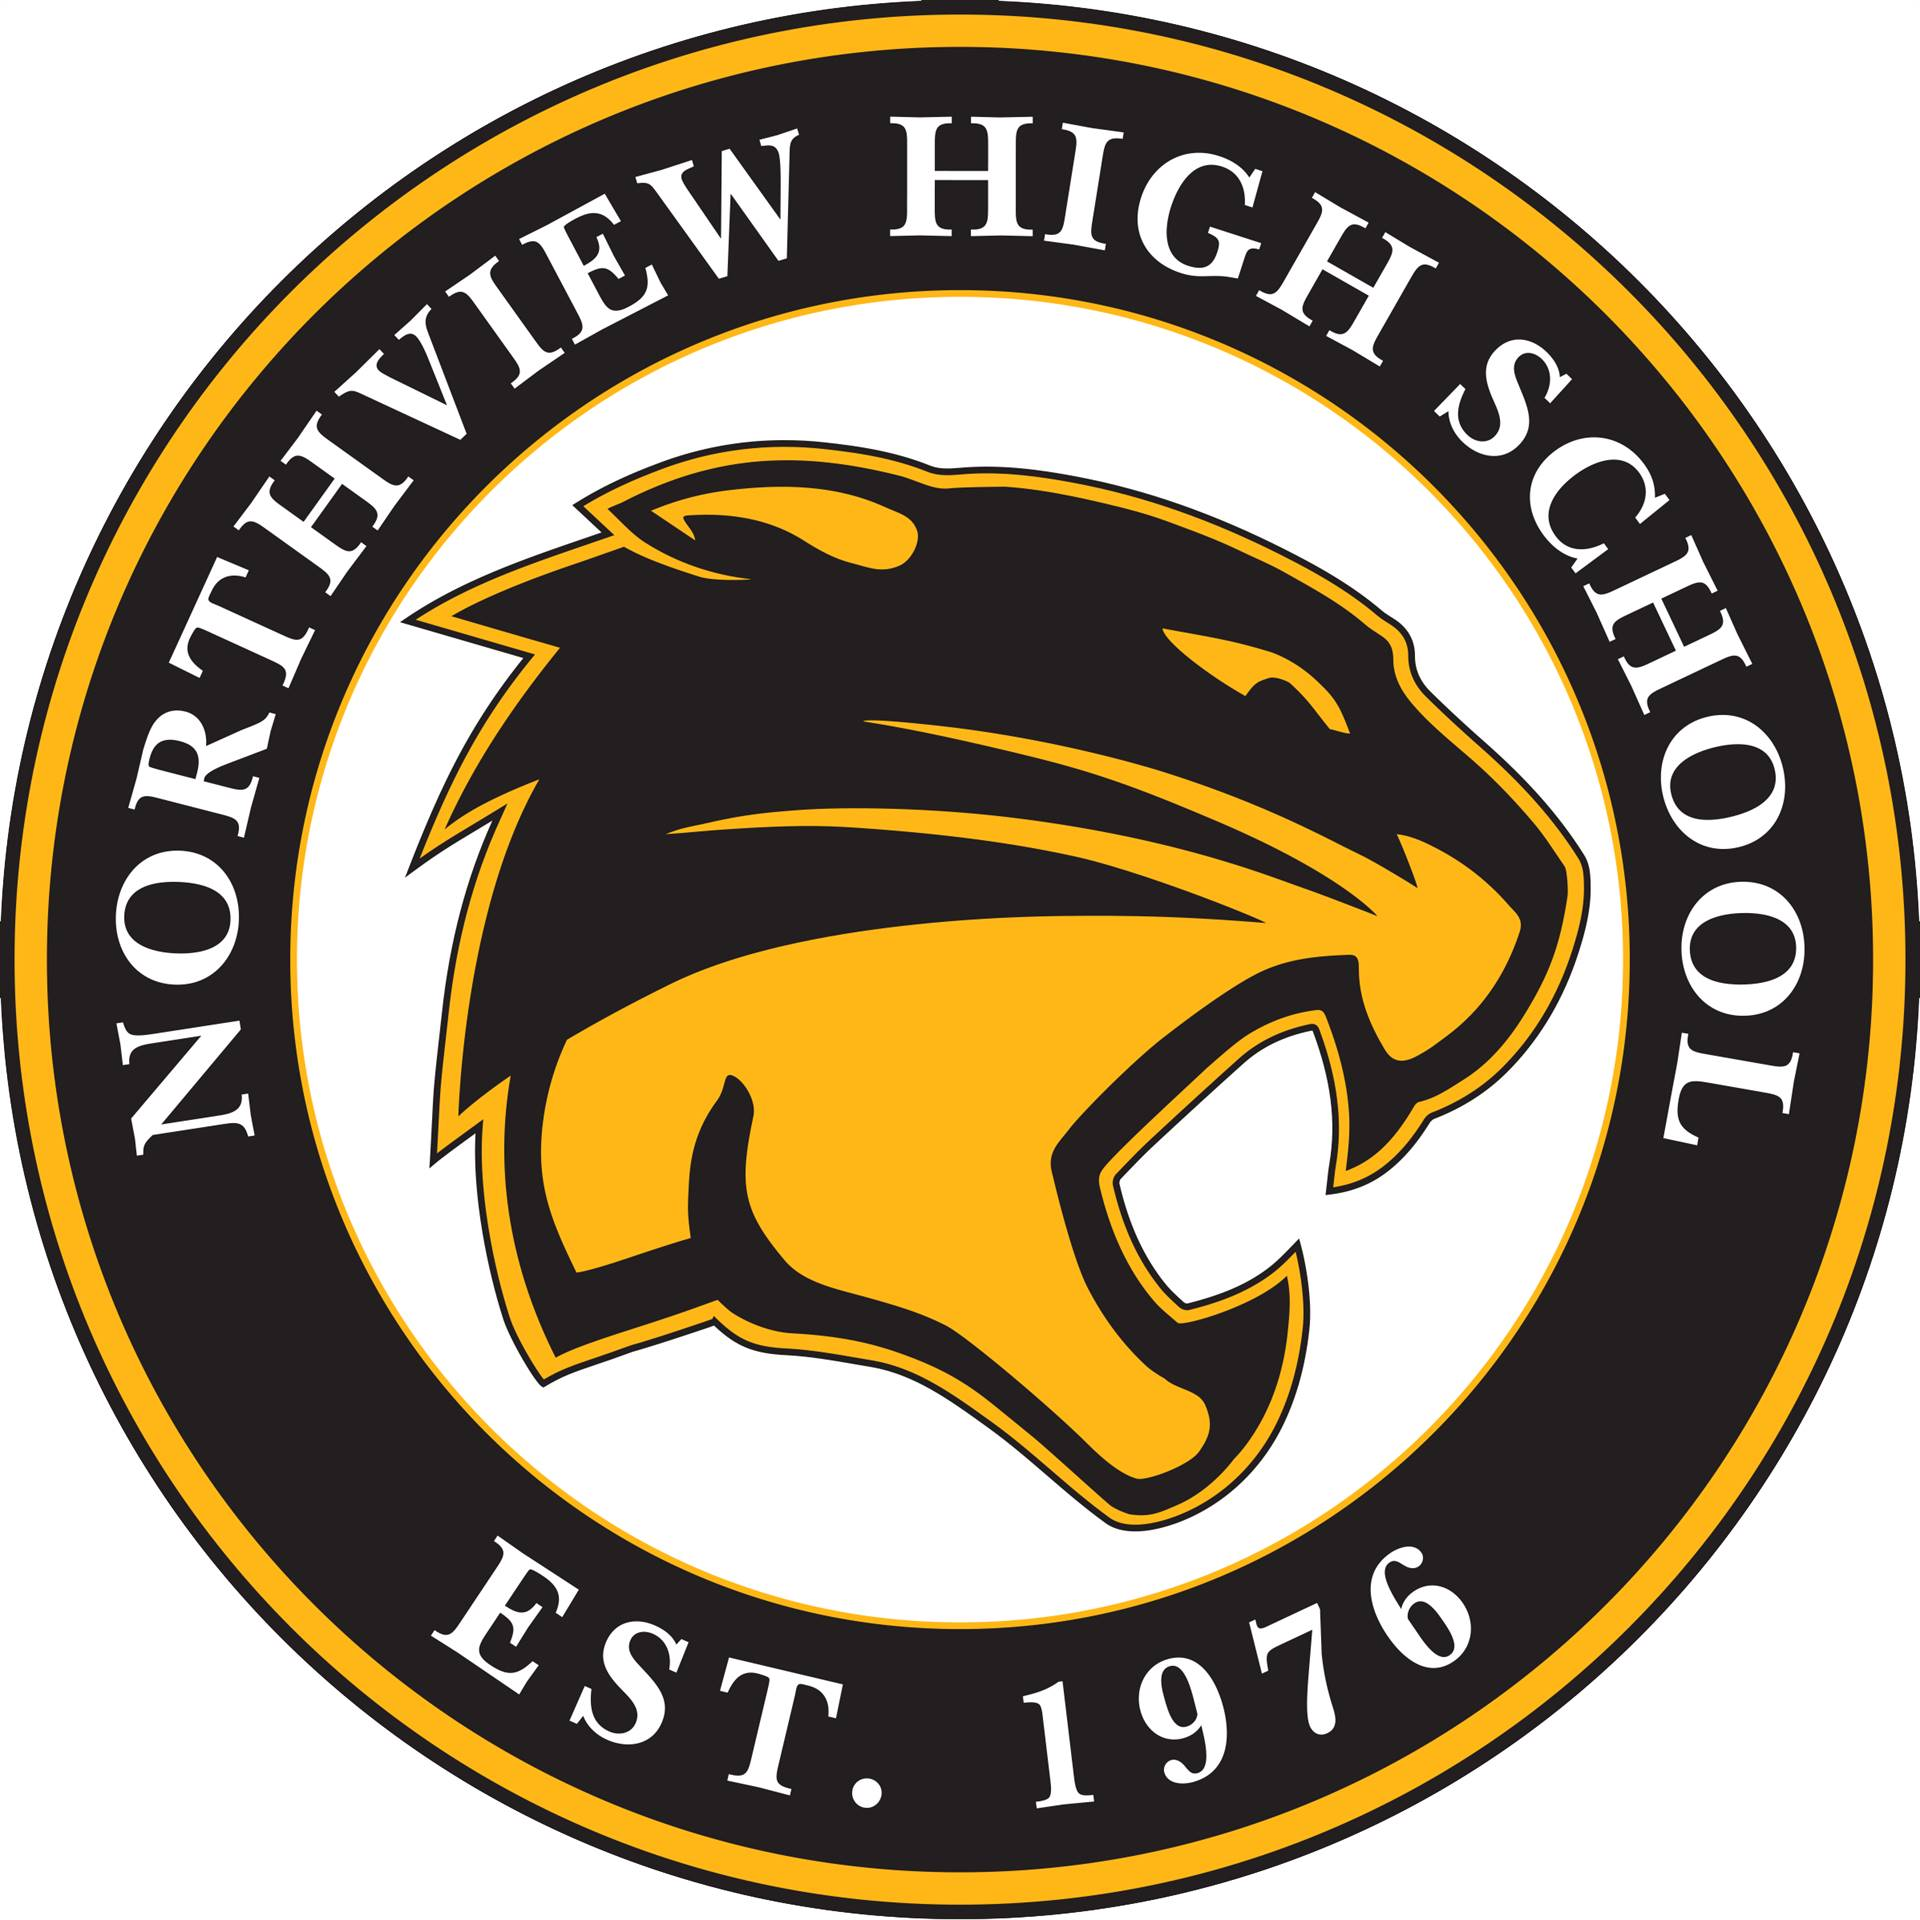 Northview High School Est. 1976